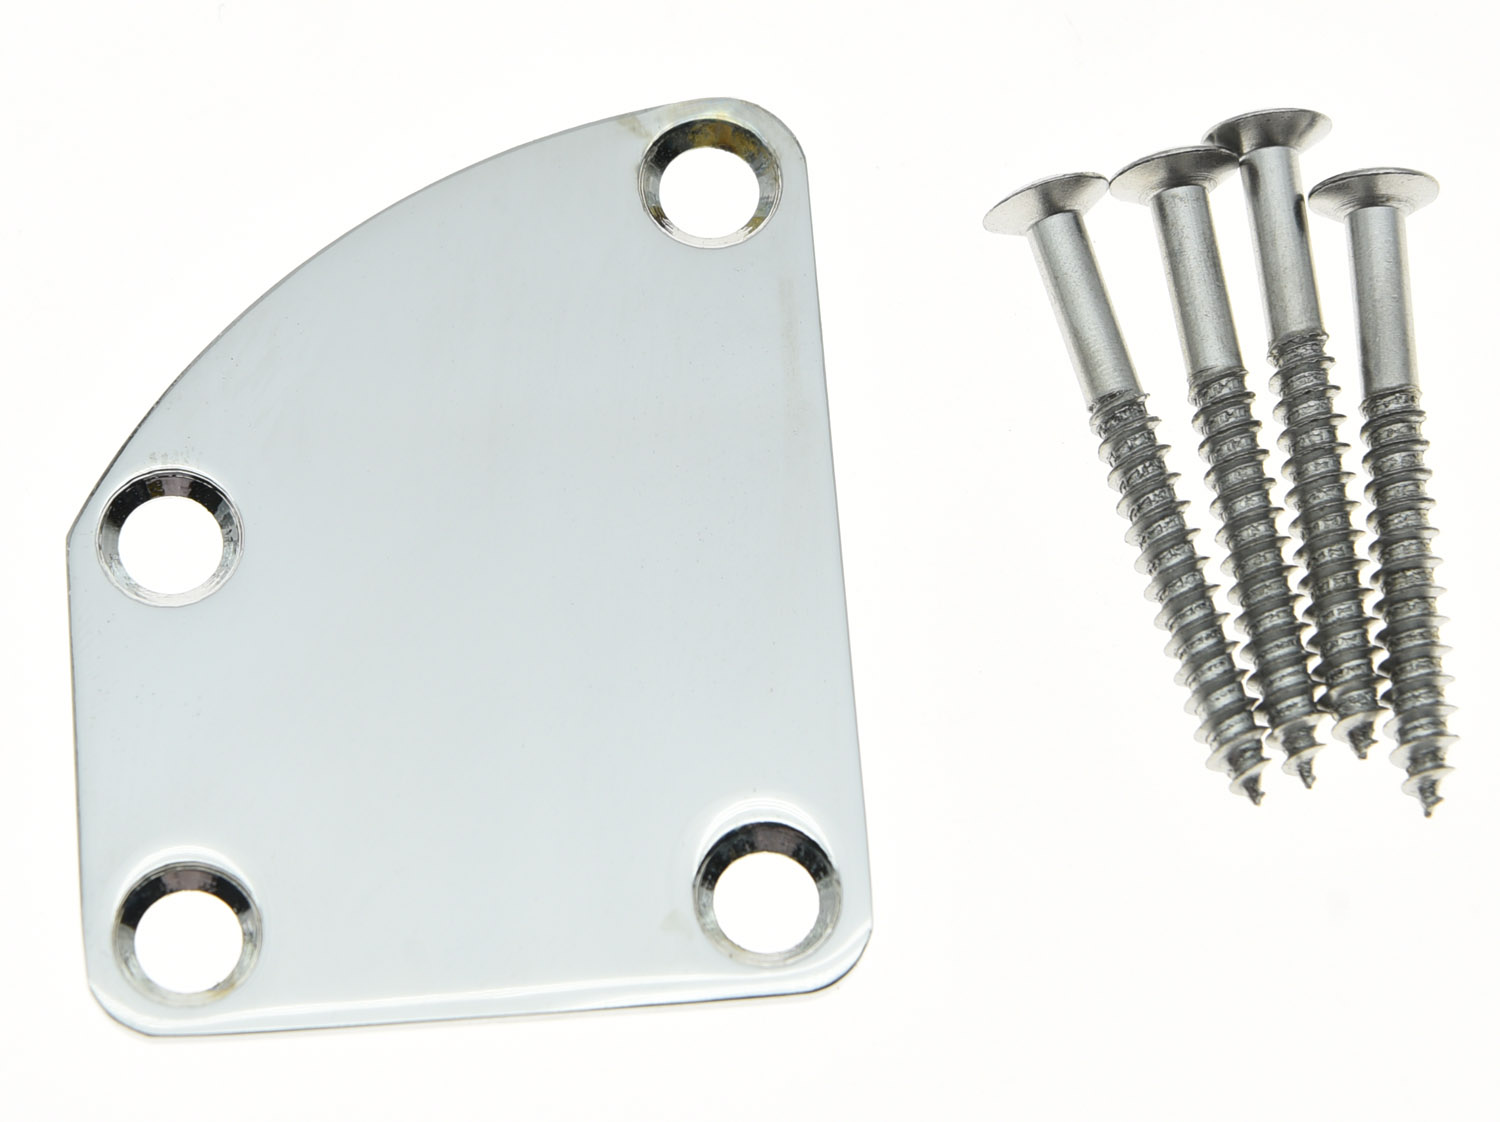 KAISH Chrome Electric Guitar Neck Plate Metal Neckplate Fits for  Delexe Strat Tele футболка с полной запечаткой женская printio лондон